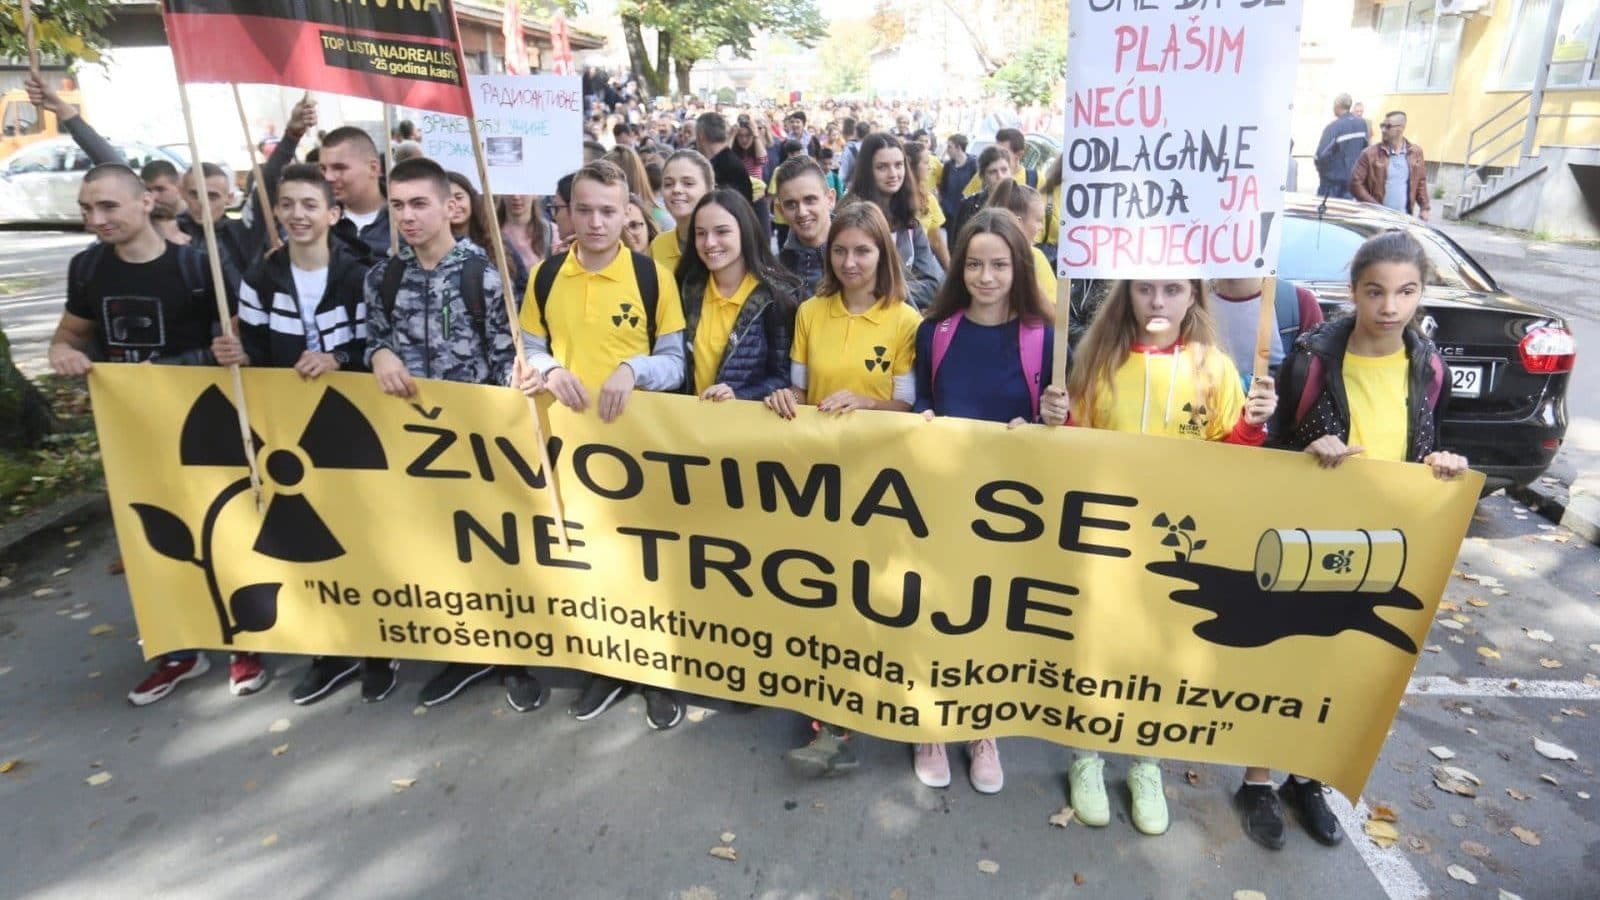 Bosnians Protest Over Mooted Croatian Nuclear Waste Site | Balkan Insight